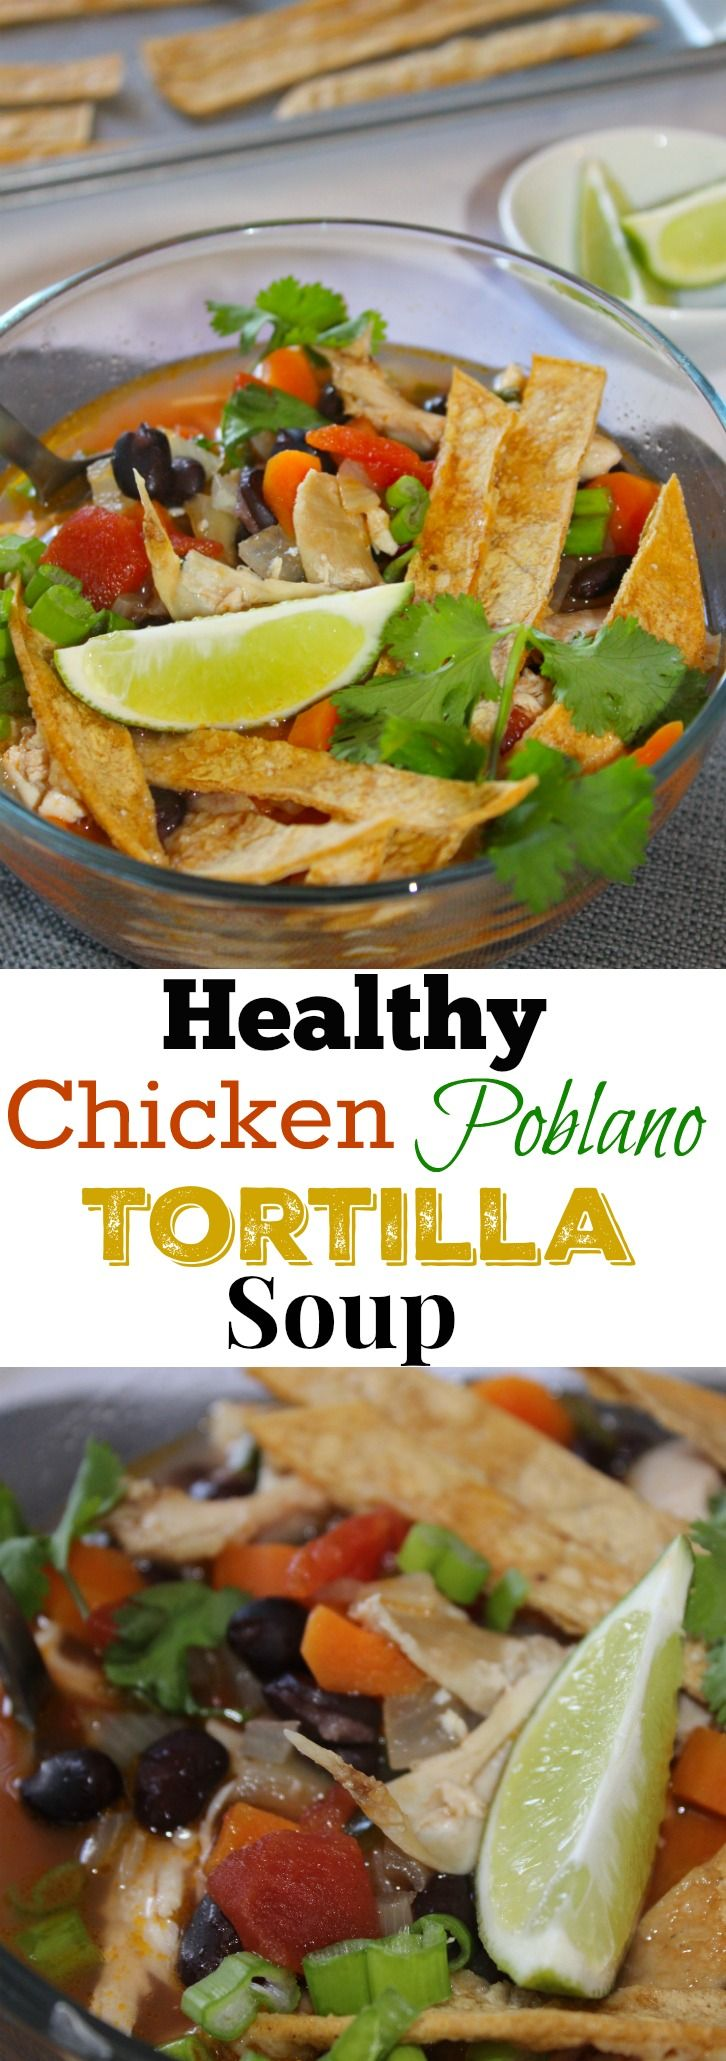 You'll do your body good with this easy 20 minute Healthy Chicken Poblano Tortilla Soup. The 10 minute homemade tortilla strips and a bit of kick from the pepper makes this such a vibrant and flavorful soup. It's full of fresh ingredients and your choice of toppings.